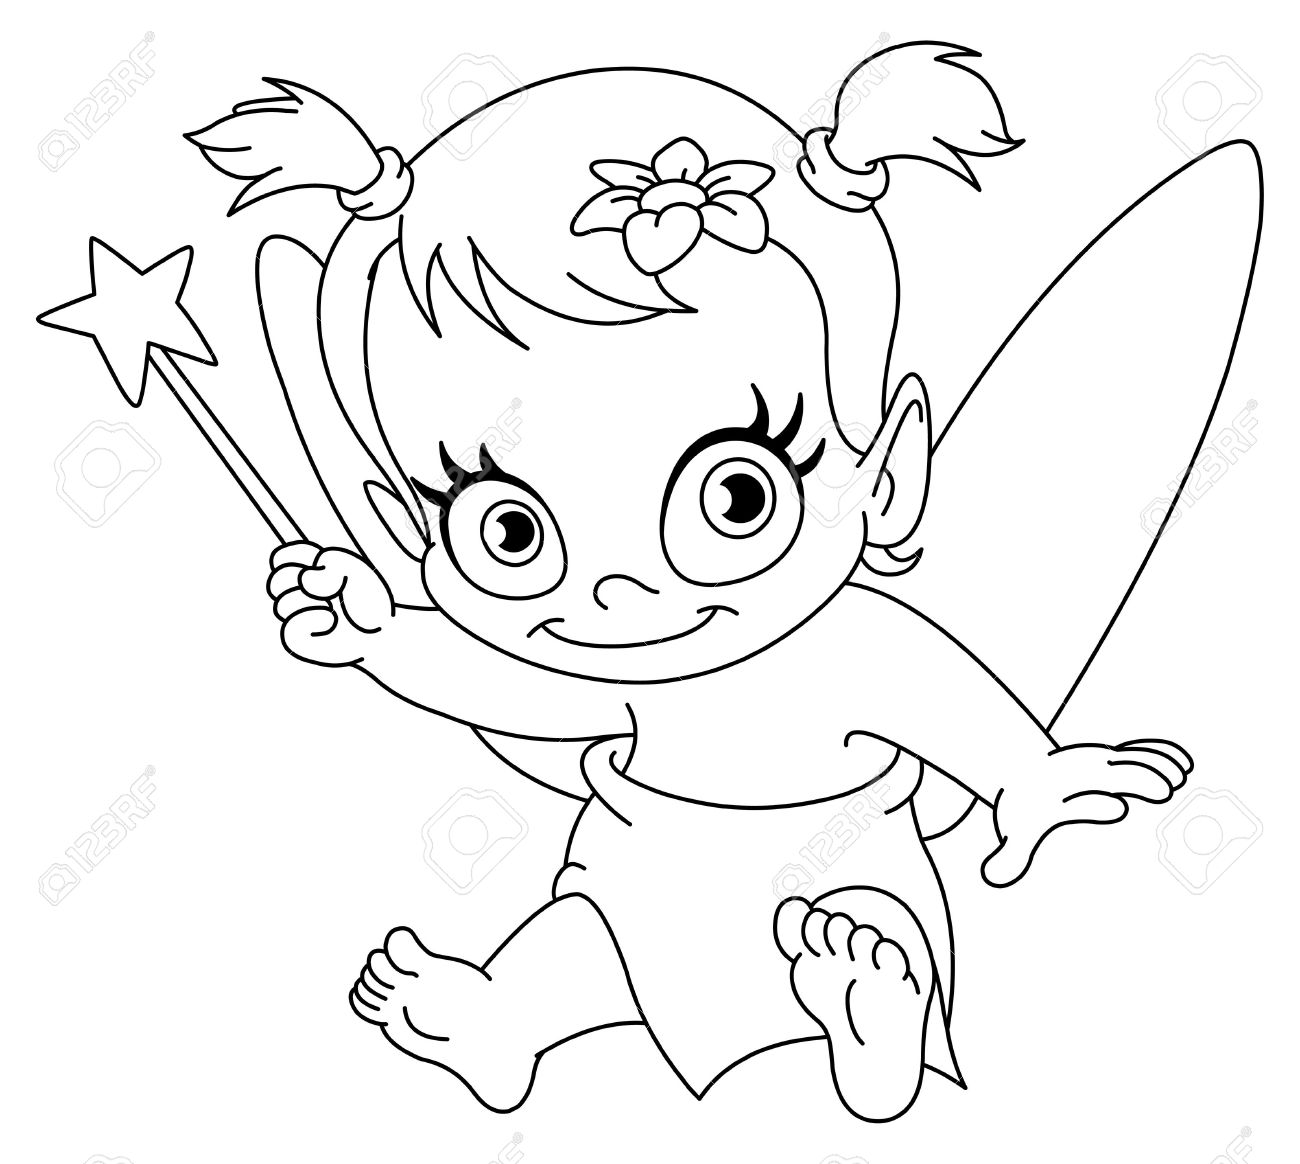 baby pictures coloring pages baby alive coloring pages at getcoloringscom free coloring pages baby pictures